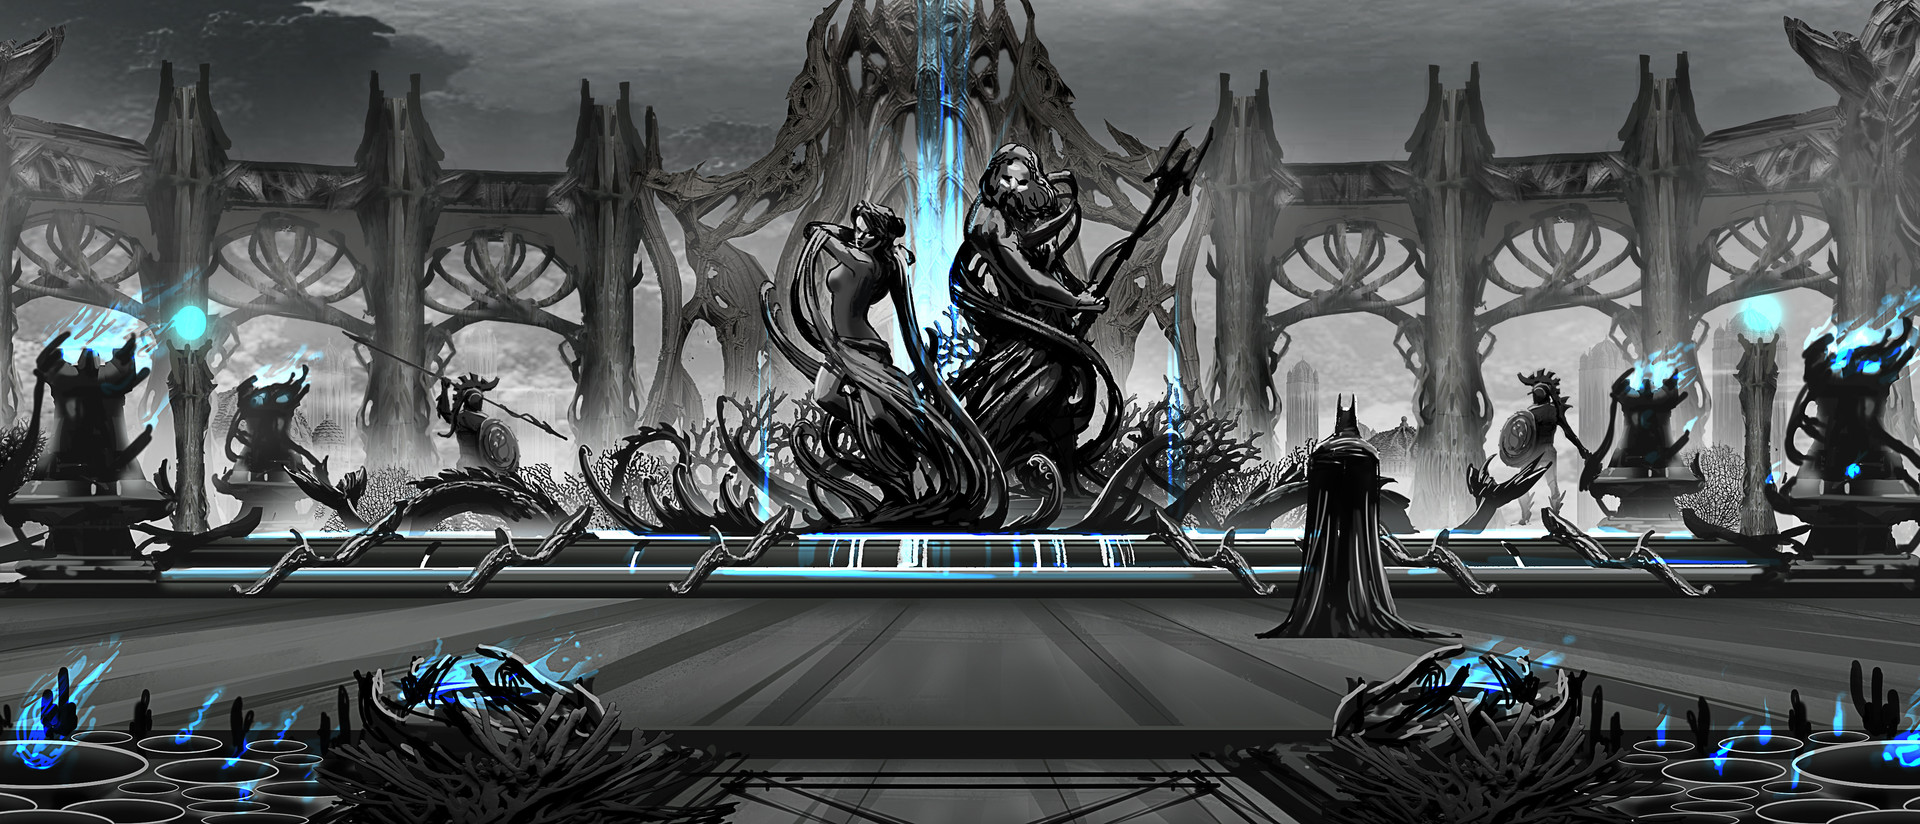 Pat presley l01 sanctum fightline canvaslayout sketch crop